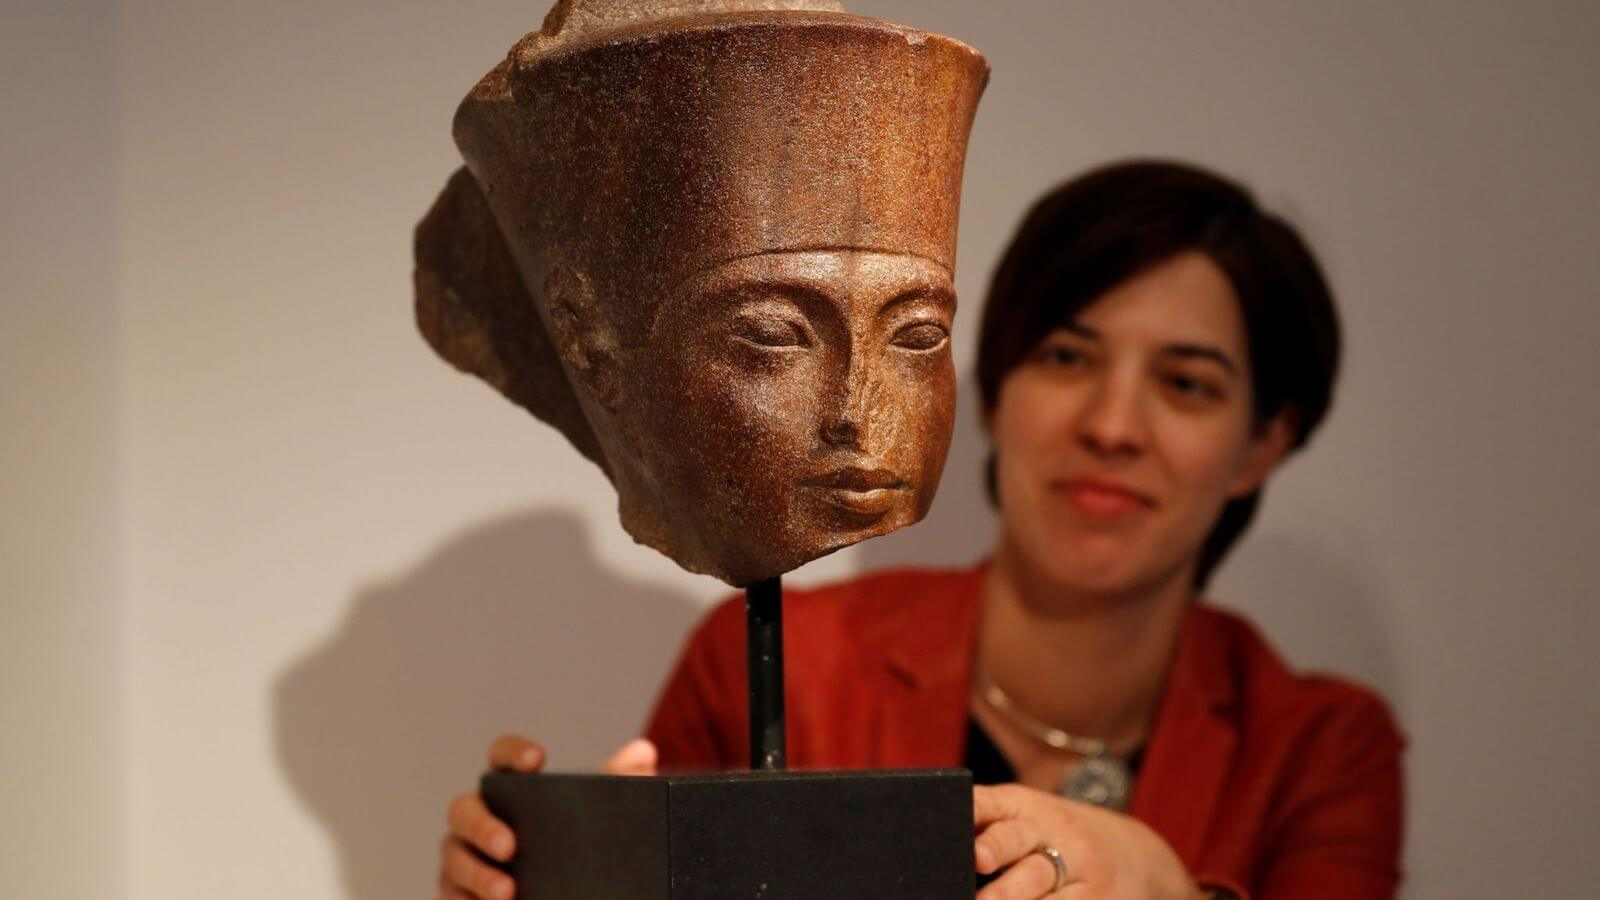 Egypt irked by sale of 'stolen' King Tut bust at Christie's auction in London